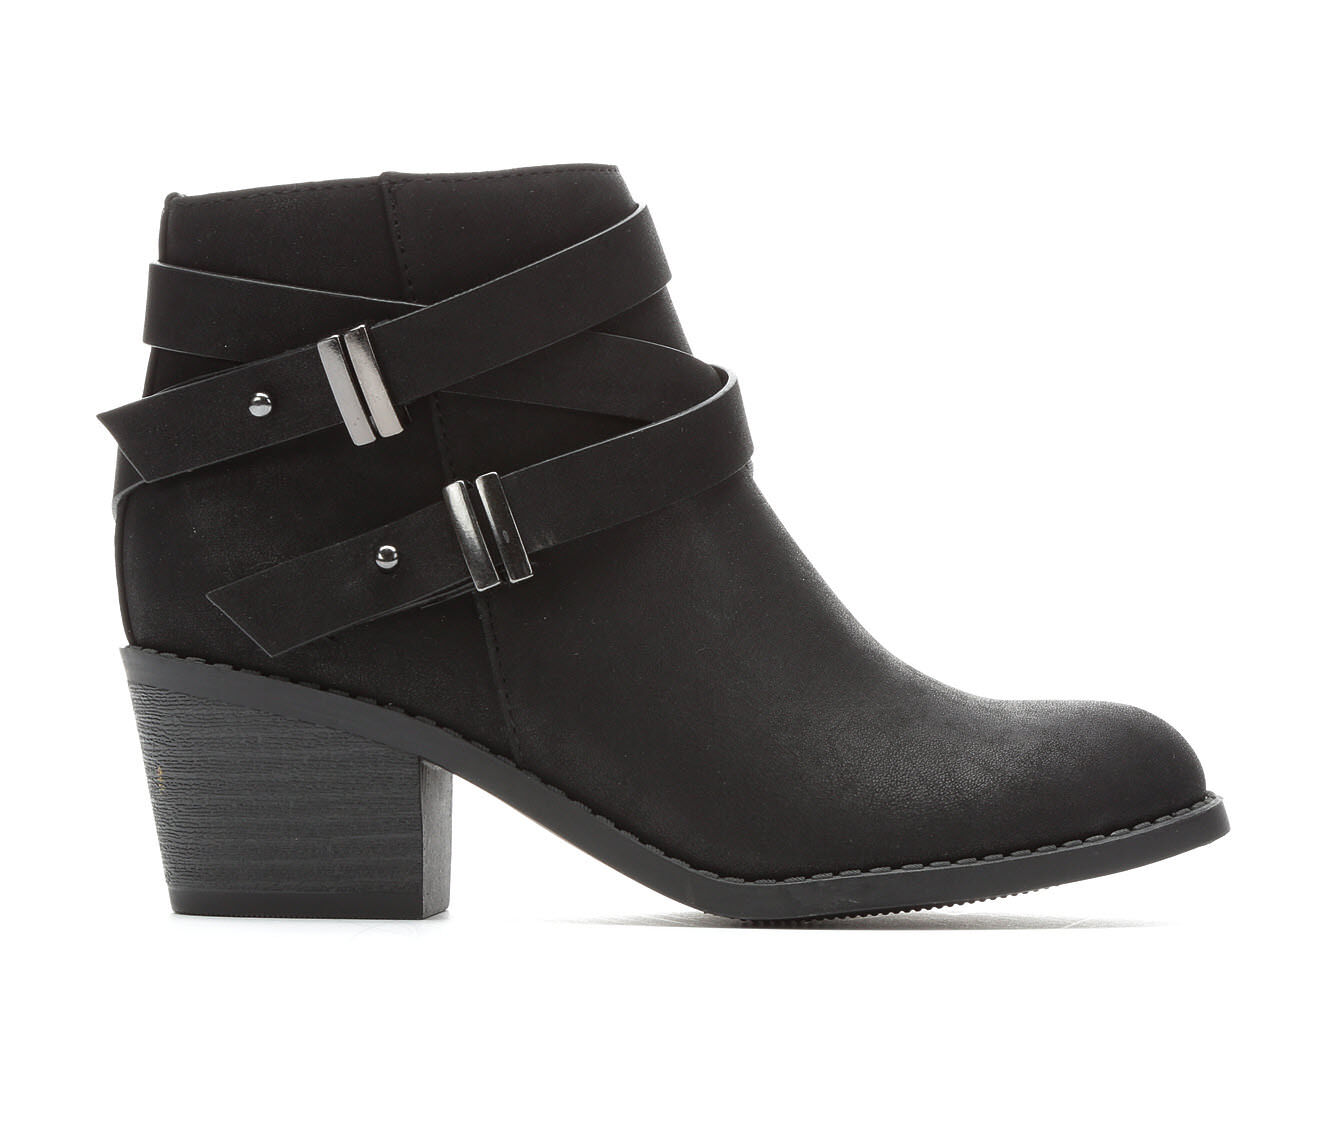 Girls' Ankle Boots and Booties | Shoe